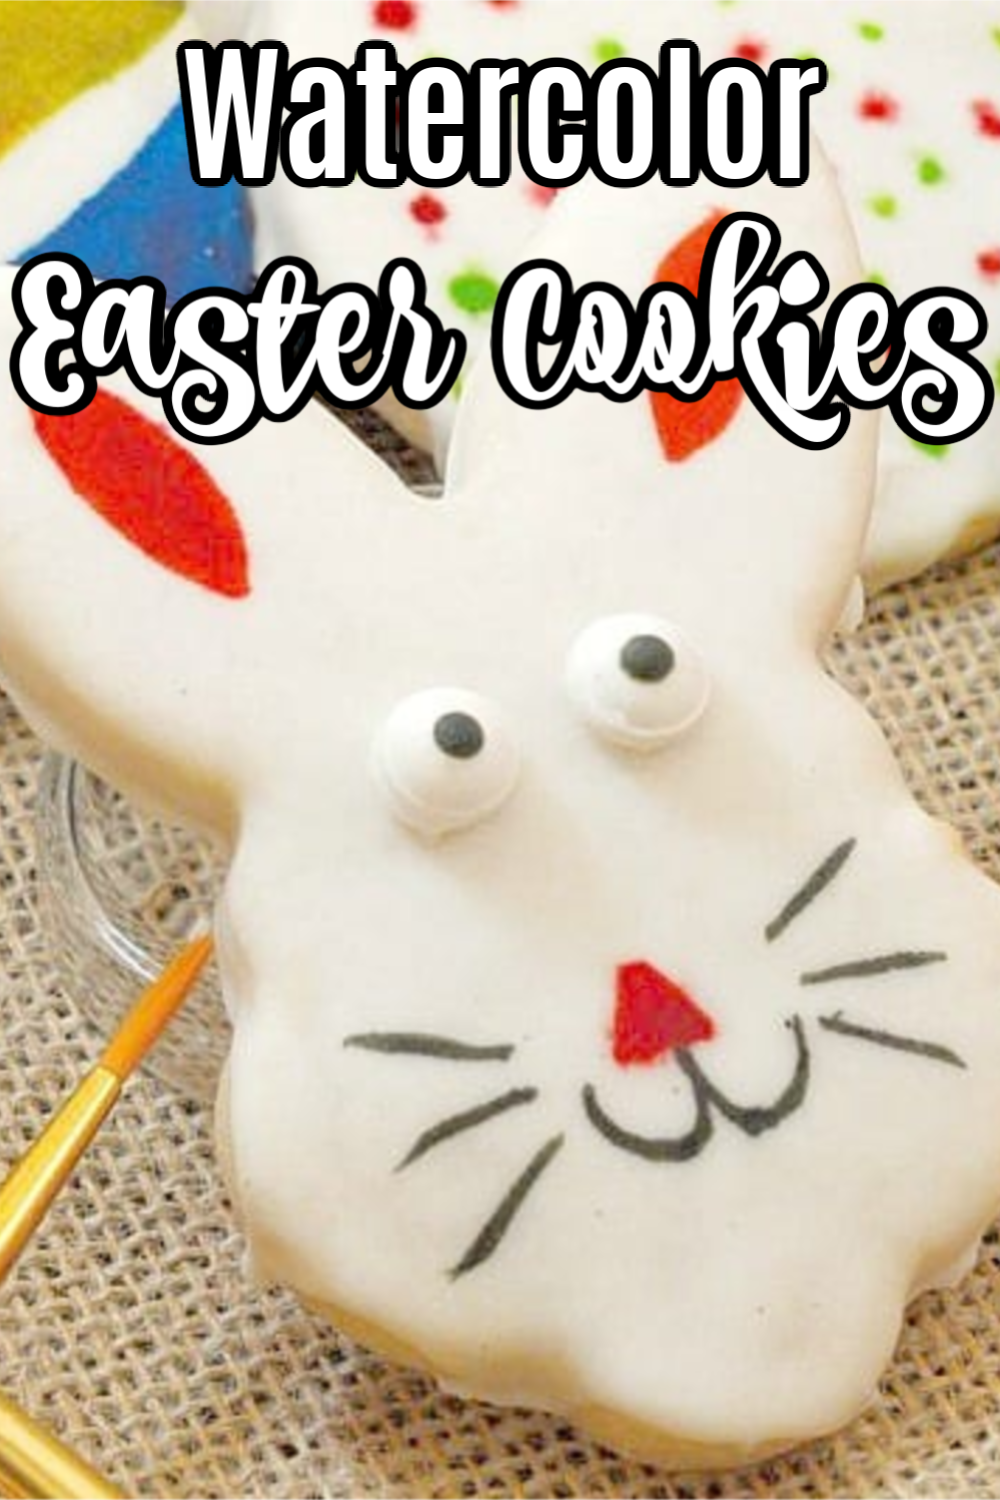 Watercolor Sugar Cookies can be made for any holiday, but I like them best for Easter. Easter Egg Cookies and Bunny Cookies are just so pretty with the soft glow of watercolor! #watercolorsugarcookies #sugarcookiecutouts #eastercookies